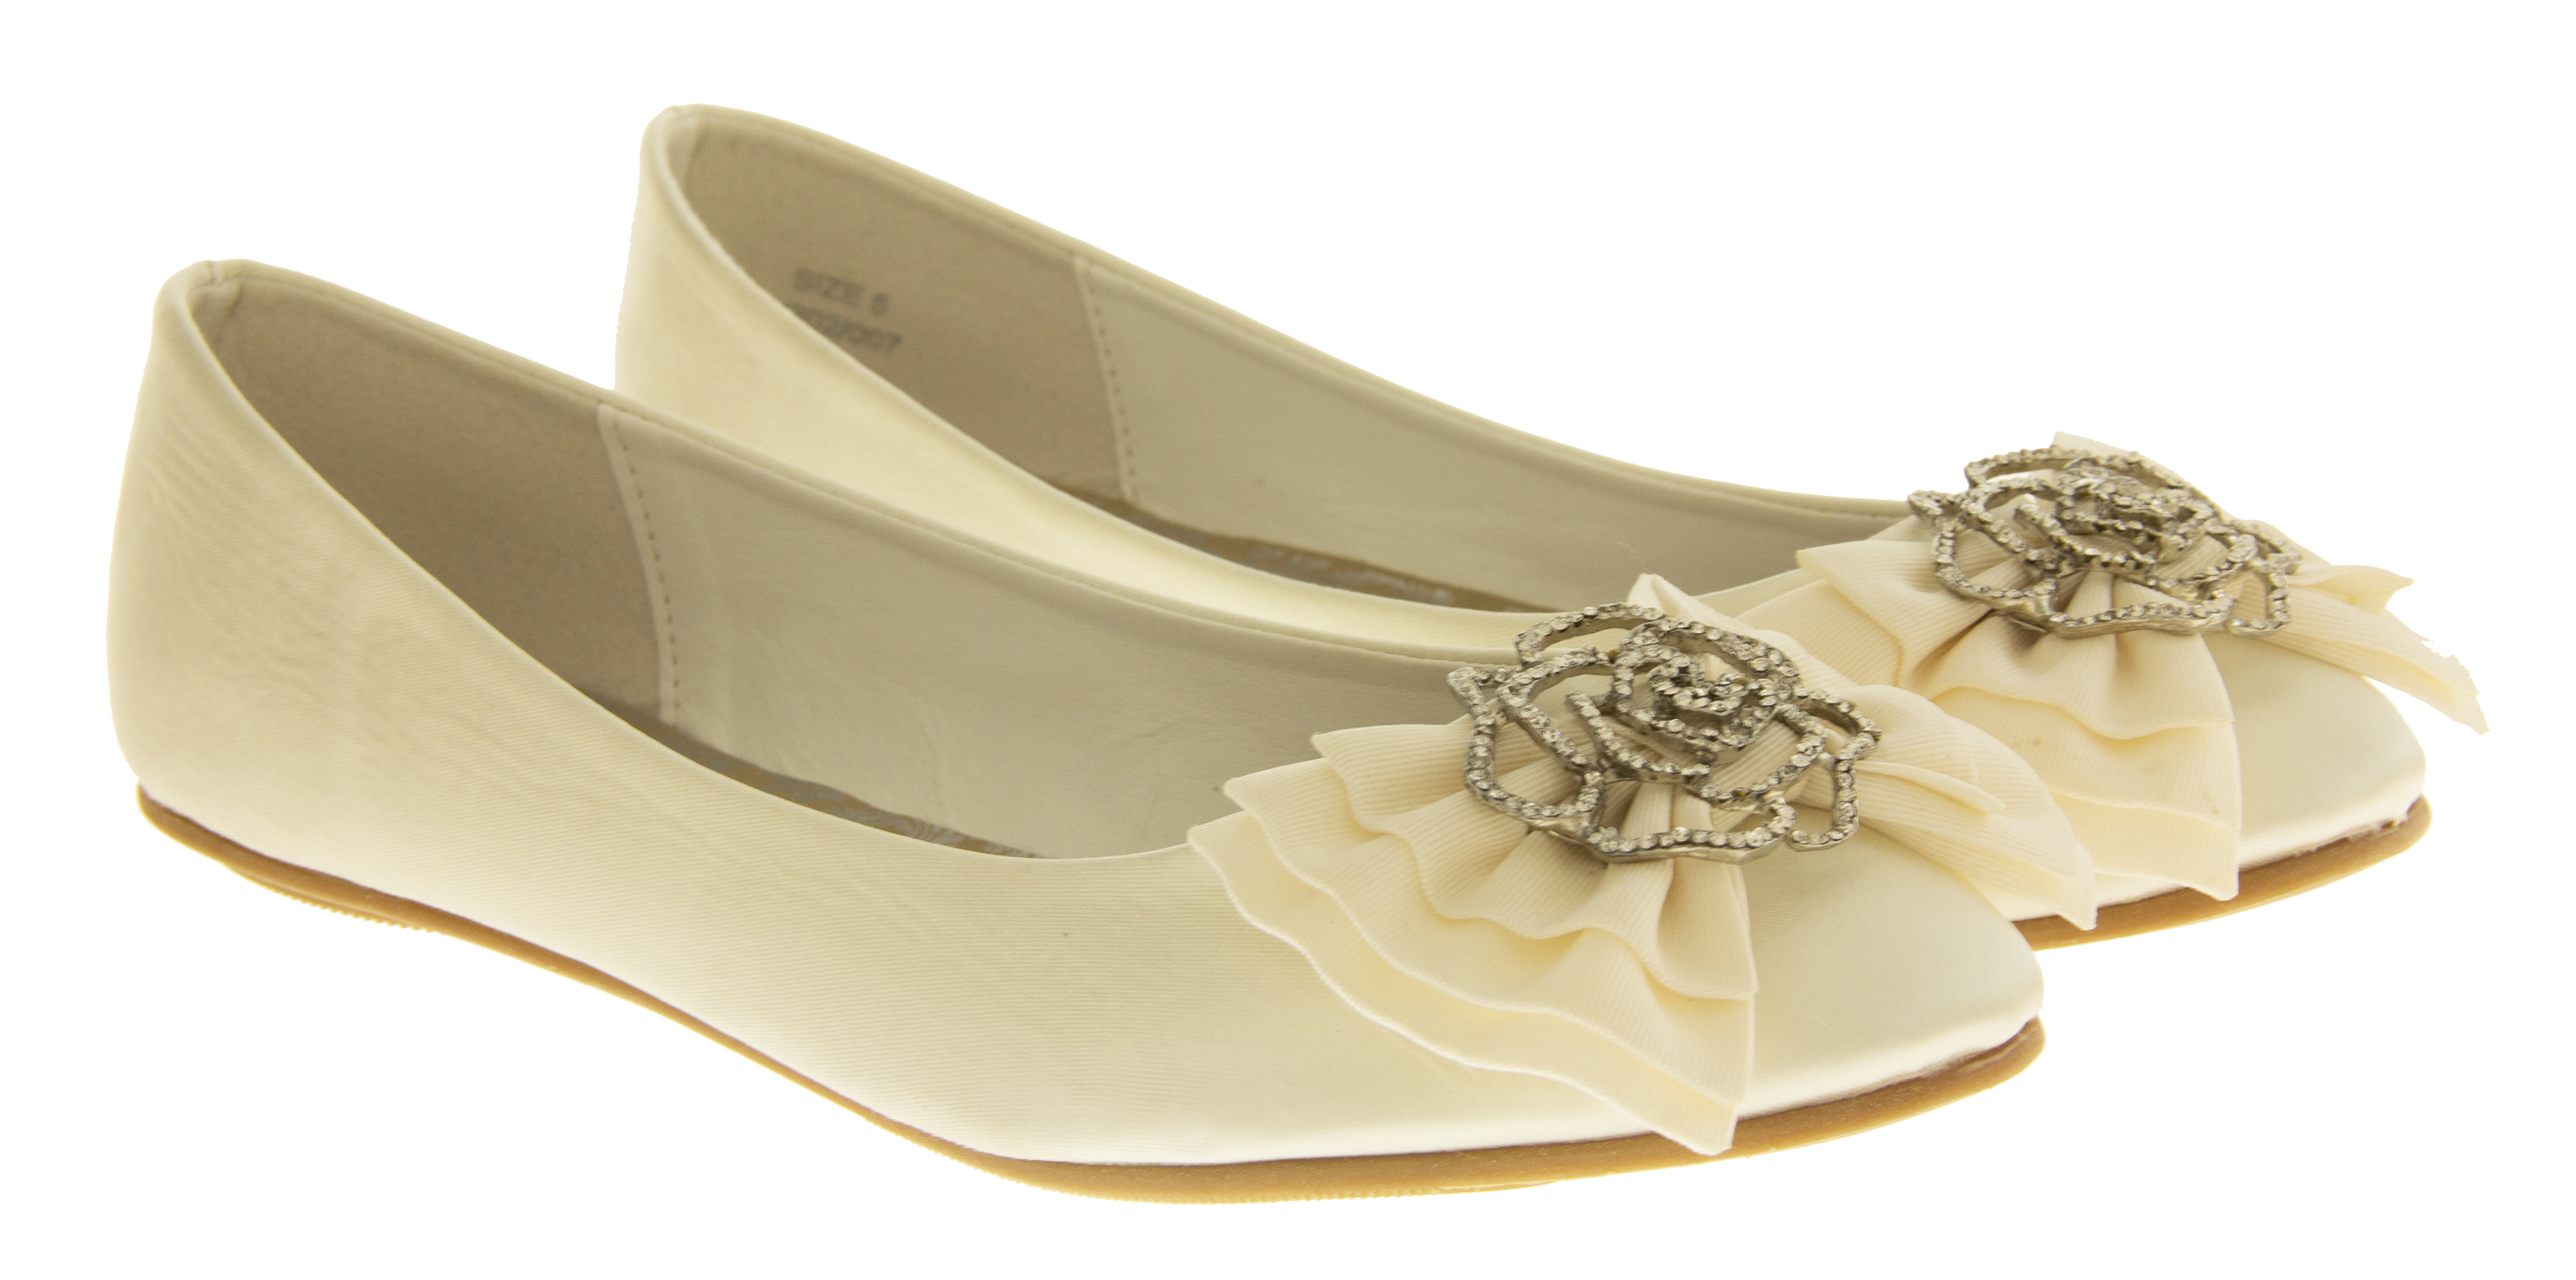 Cinderollies foldable ballet flats that fit in your purse are great as wedding favors & bridesmaid gifts. Bulk discounts available. As seen on the TODAY show. Pearl (Ivory) Foldable Ballet Flats for Wedding by Cinderollies. Rated out of 5 $ Select options.